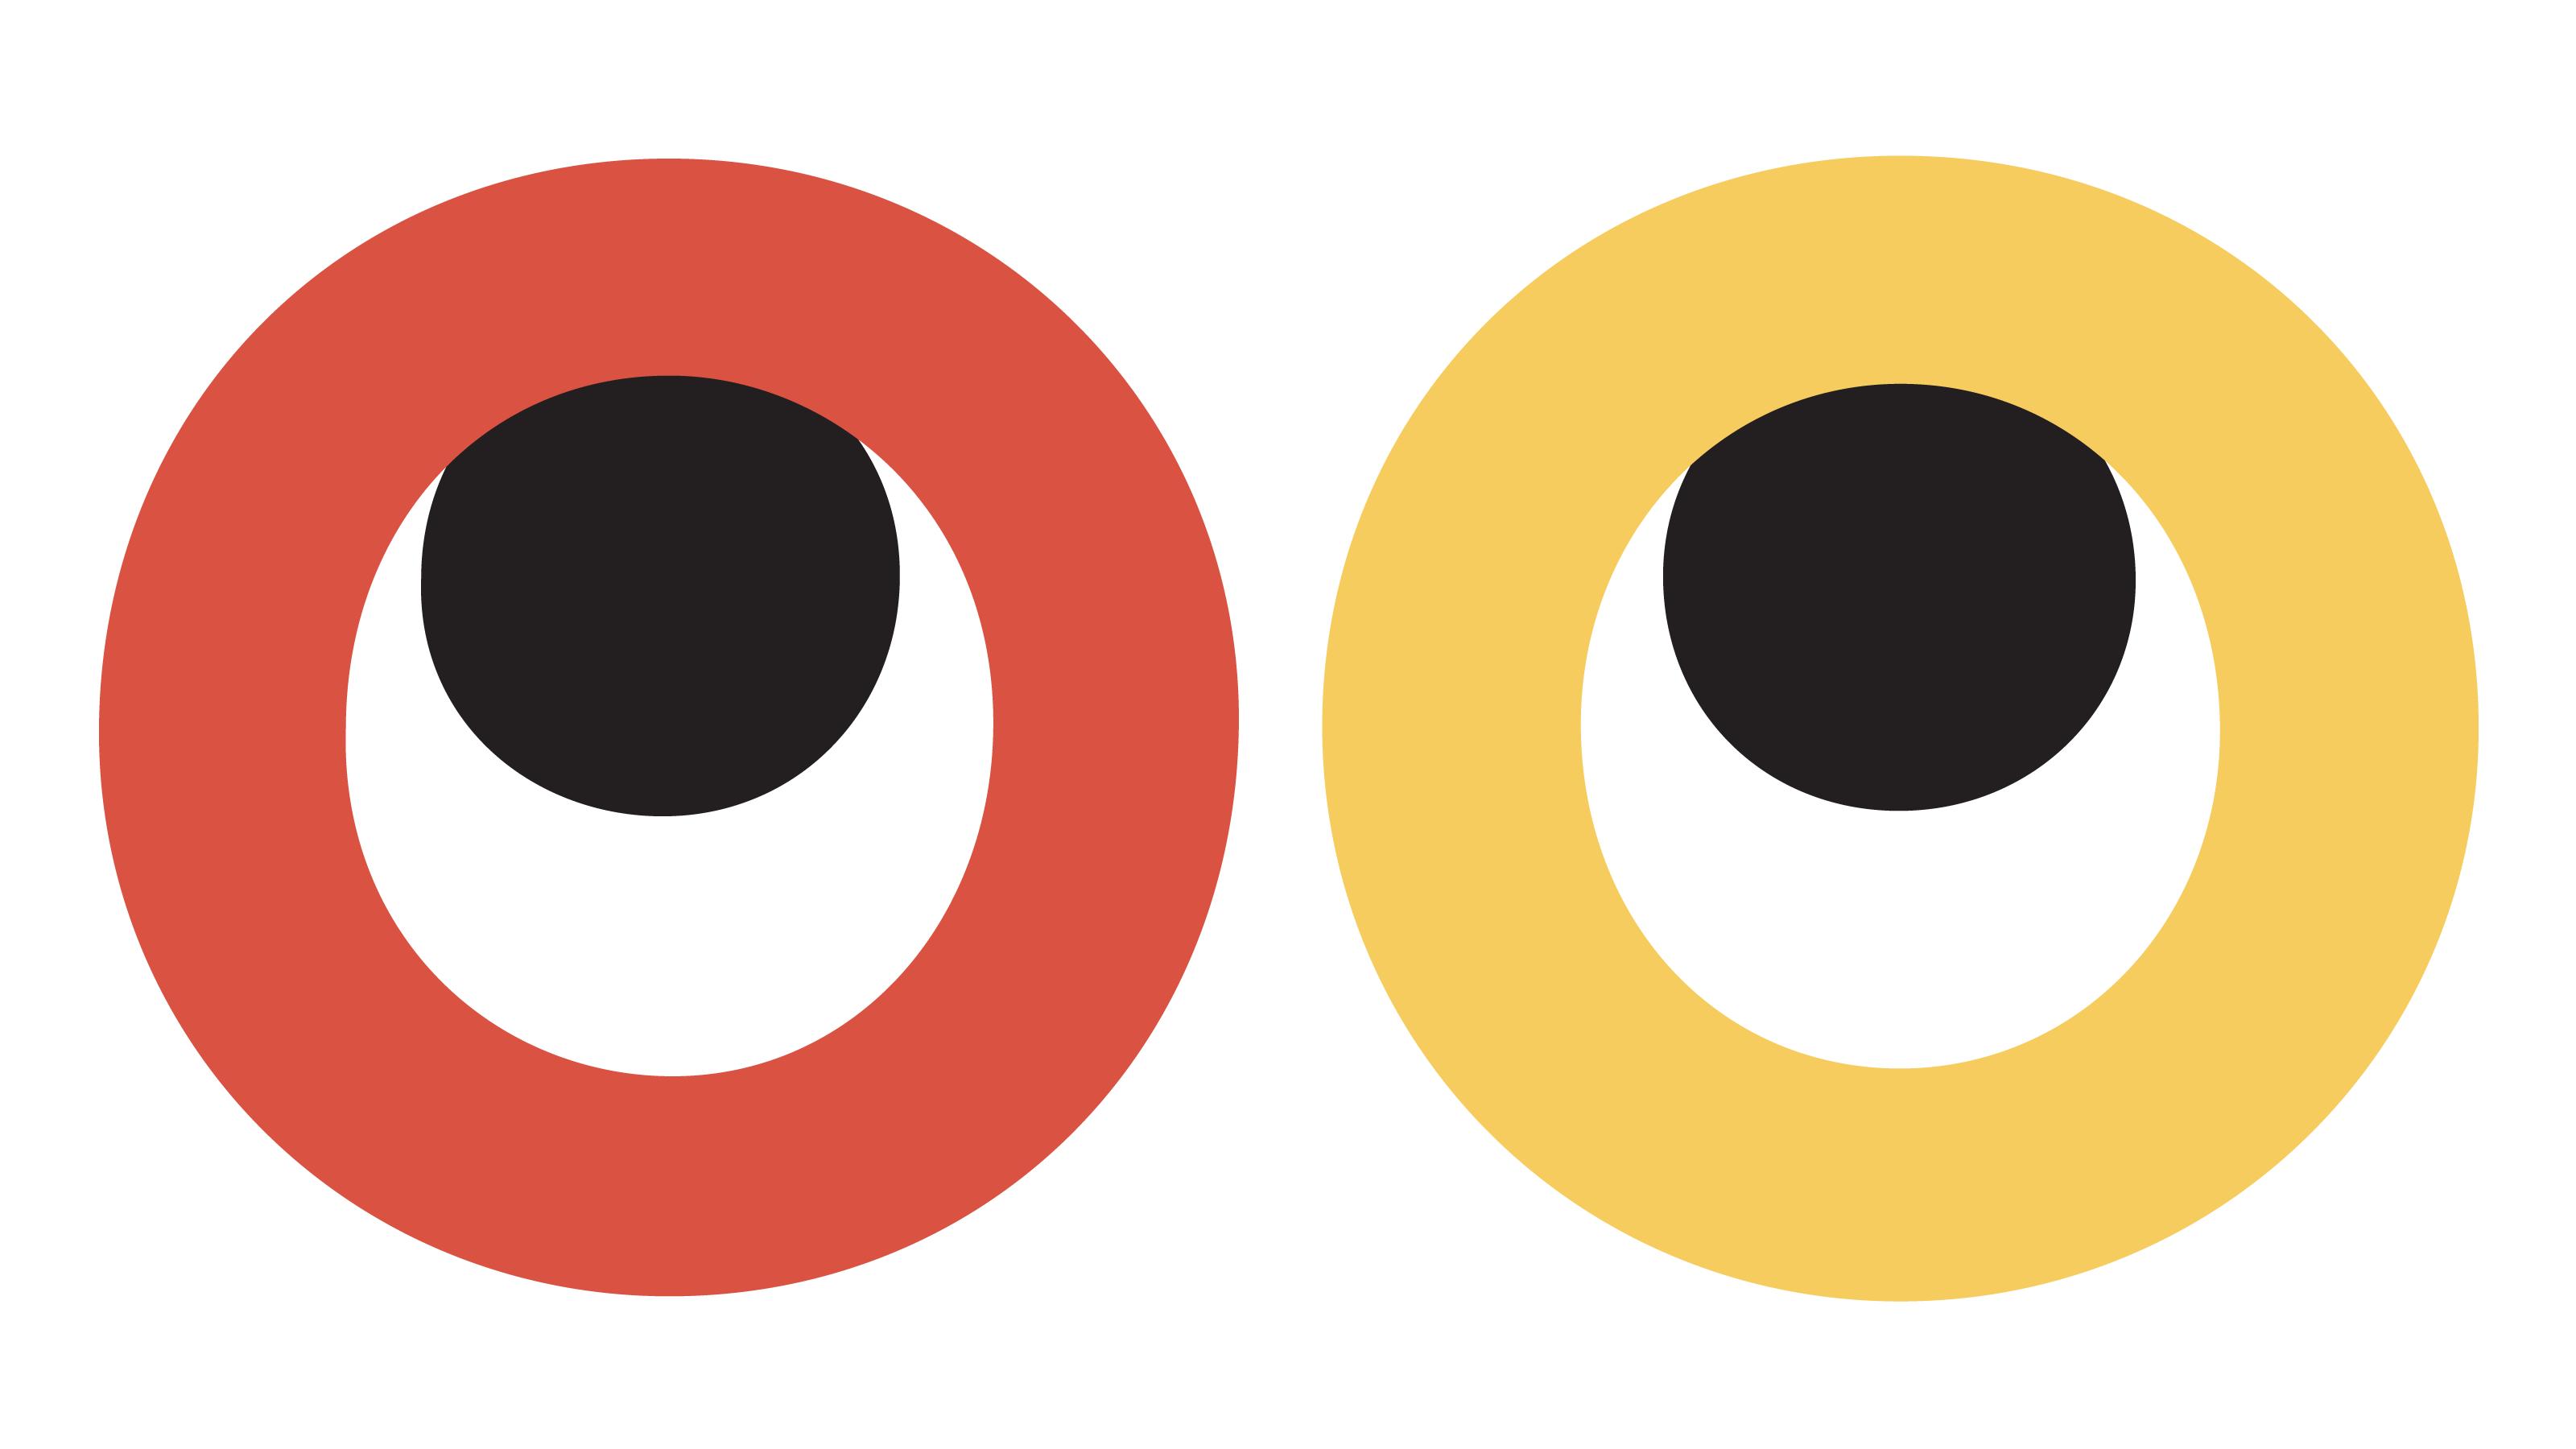 Illustration: Two Os in the middle of the word 'Google', with black dots indicating an eye-roll